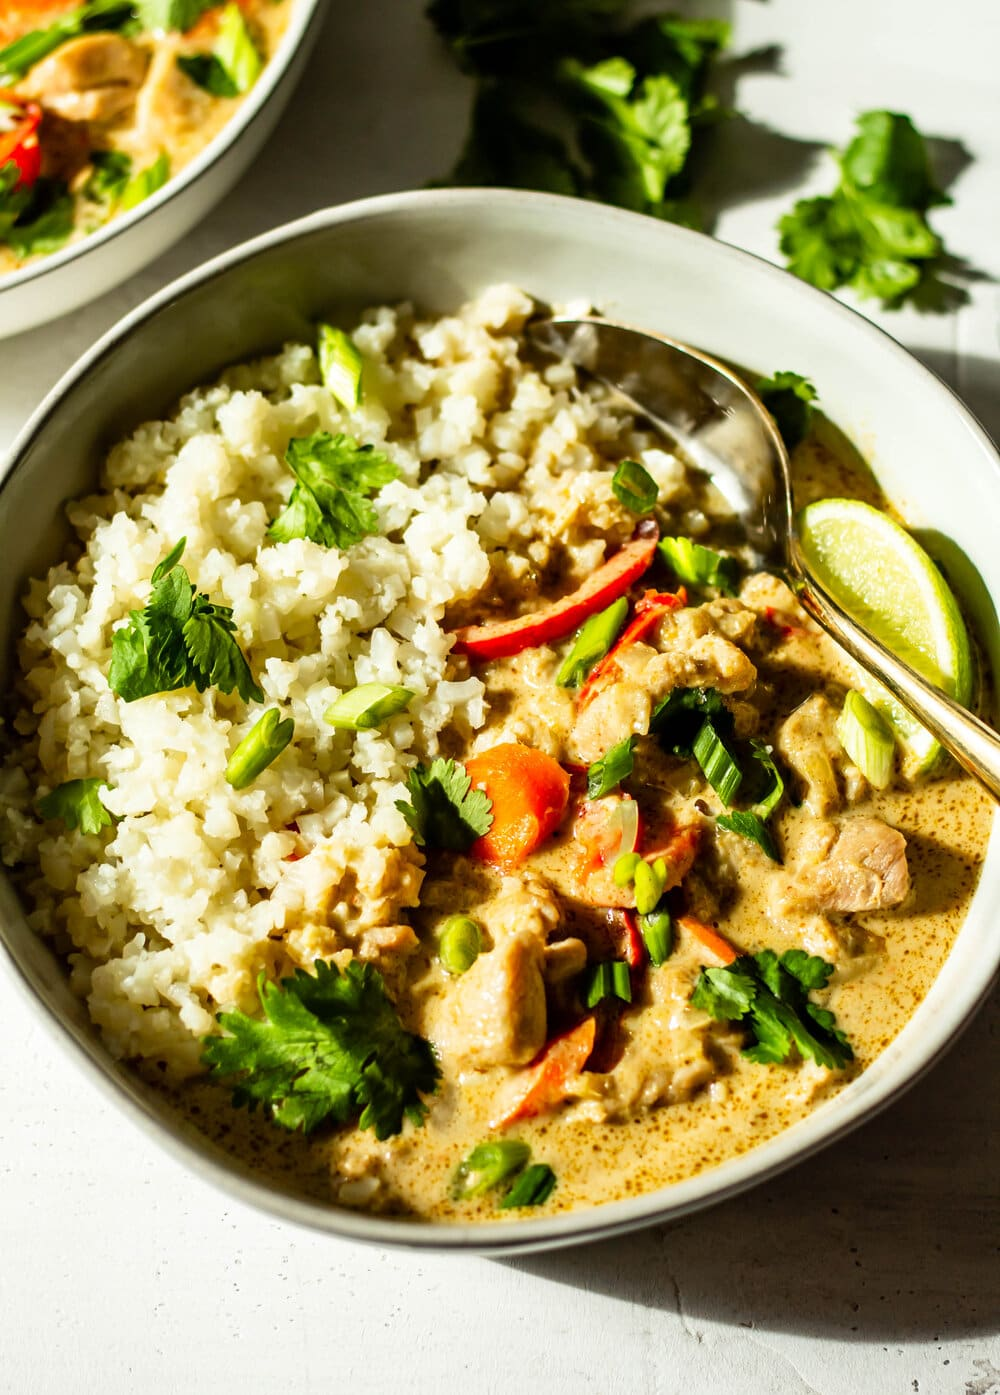 Thai Green Curry with Chicken and Vegetables in white bowl